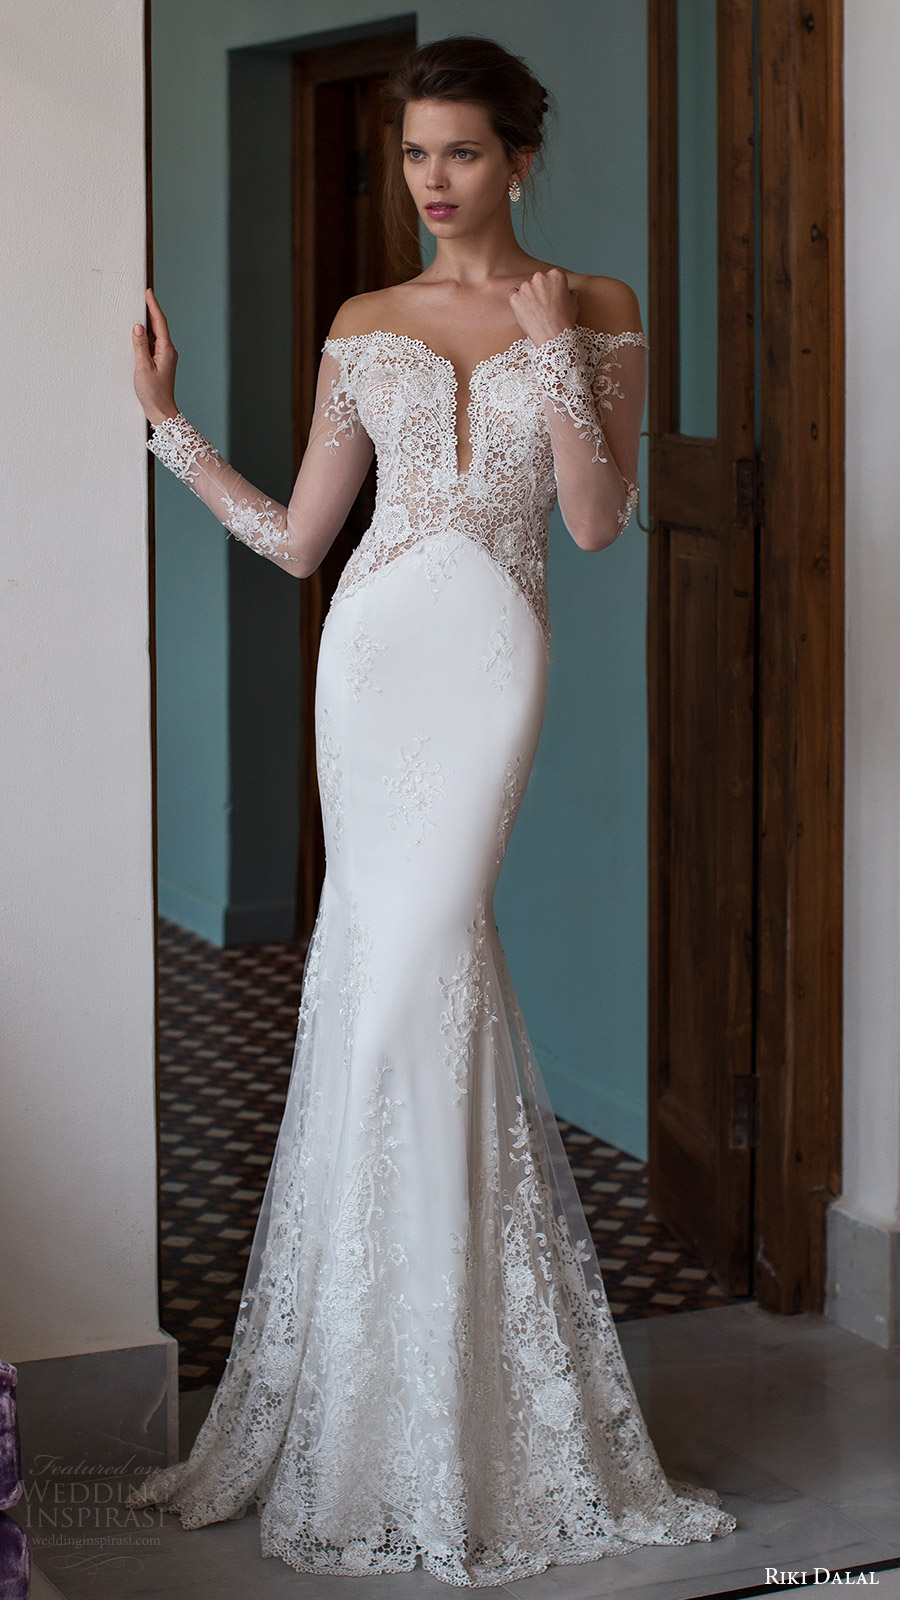 riki dalal bridal 2016 illusion long sleeves off shoulder pluging sweetheart lace sheath wedding dress (1810) mv elegant pretty romantic